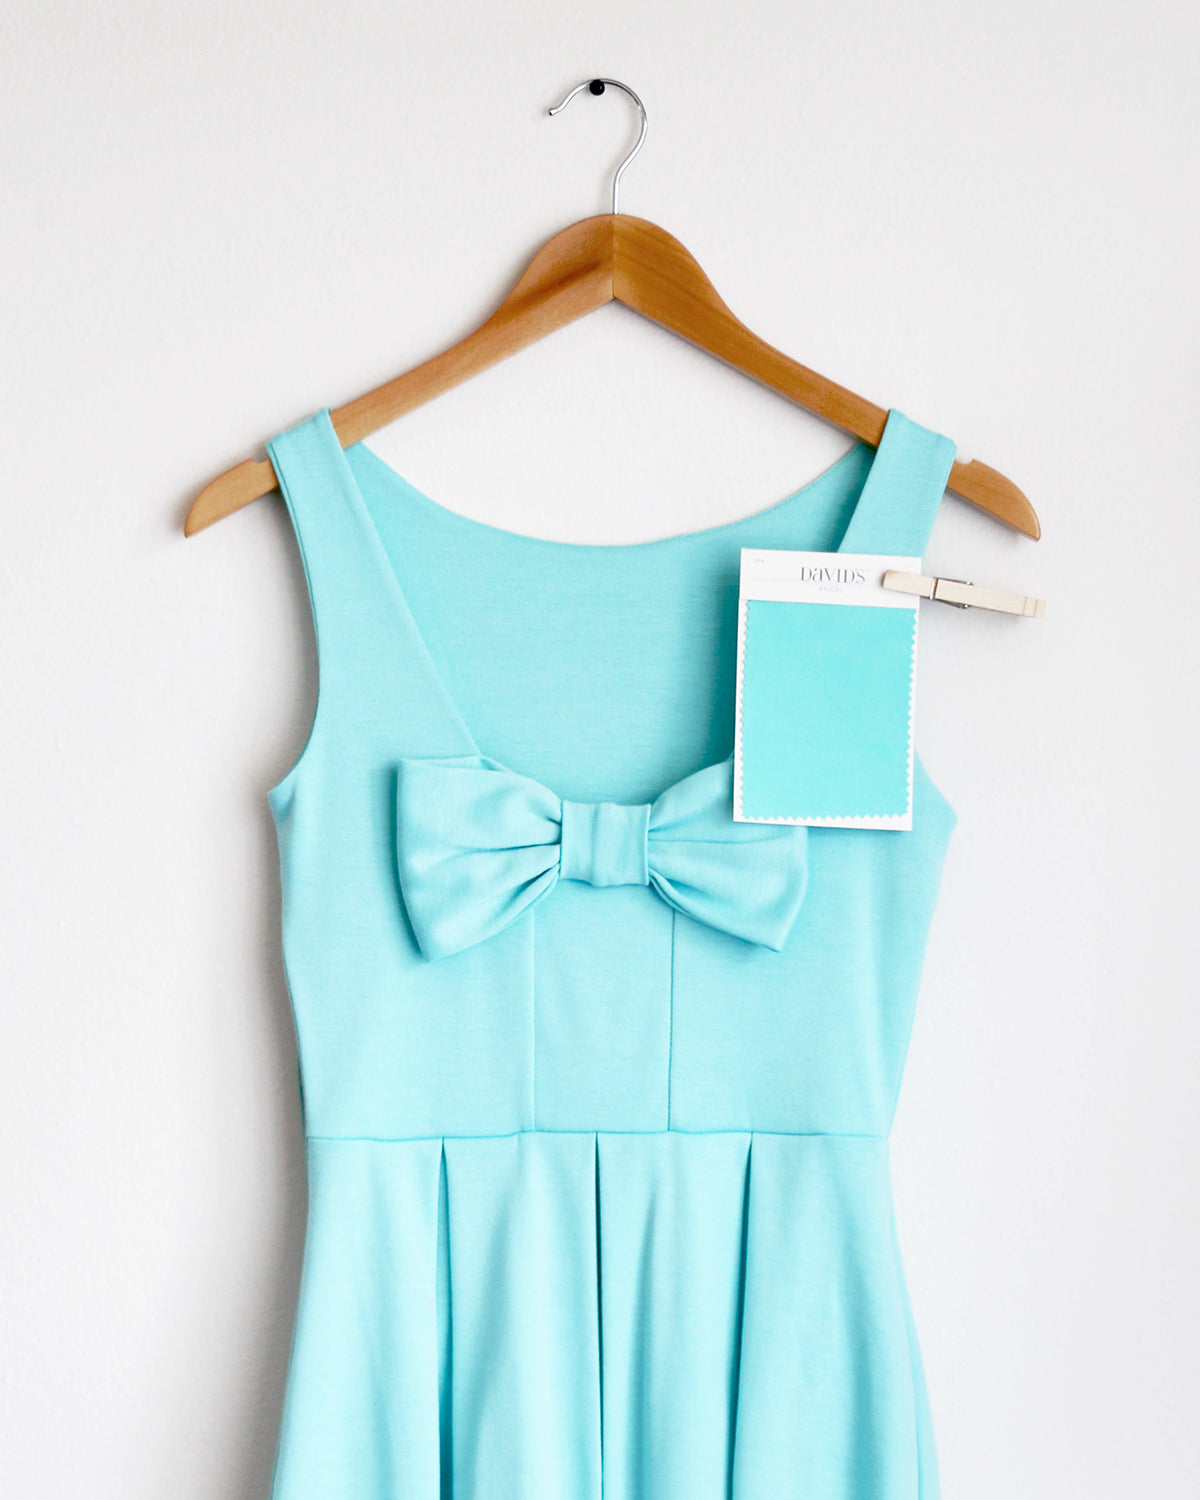 Apricity - JANUARY Dress in Aqua - David's Bridal Spa bridesmaid dress swatch